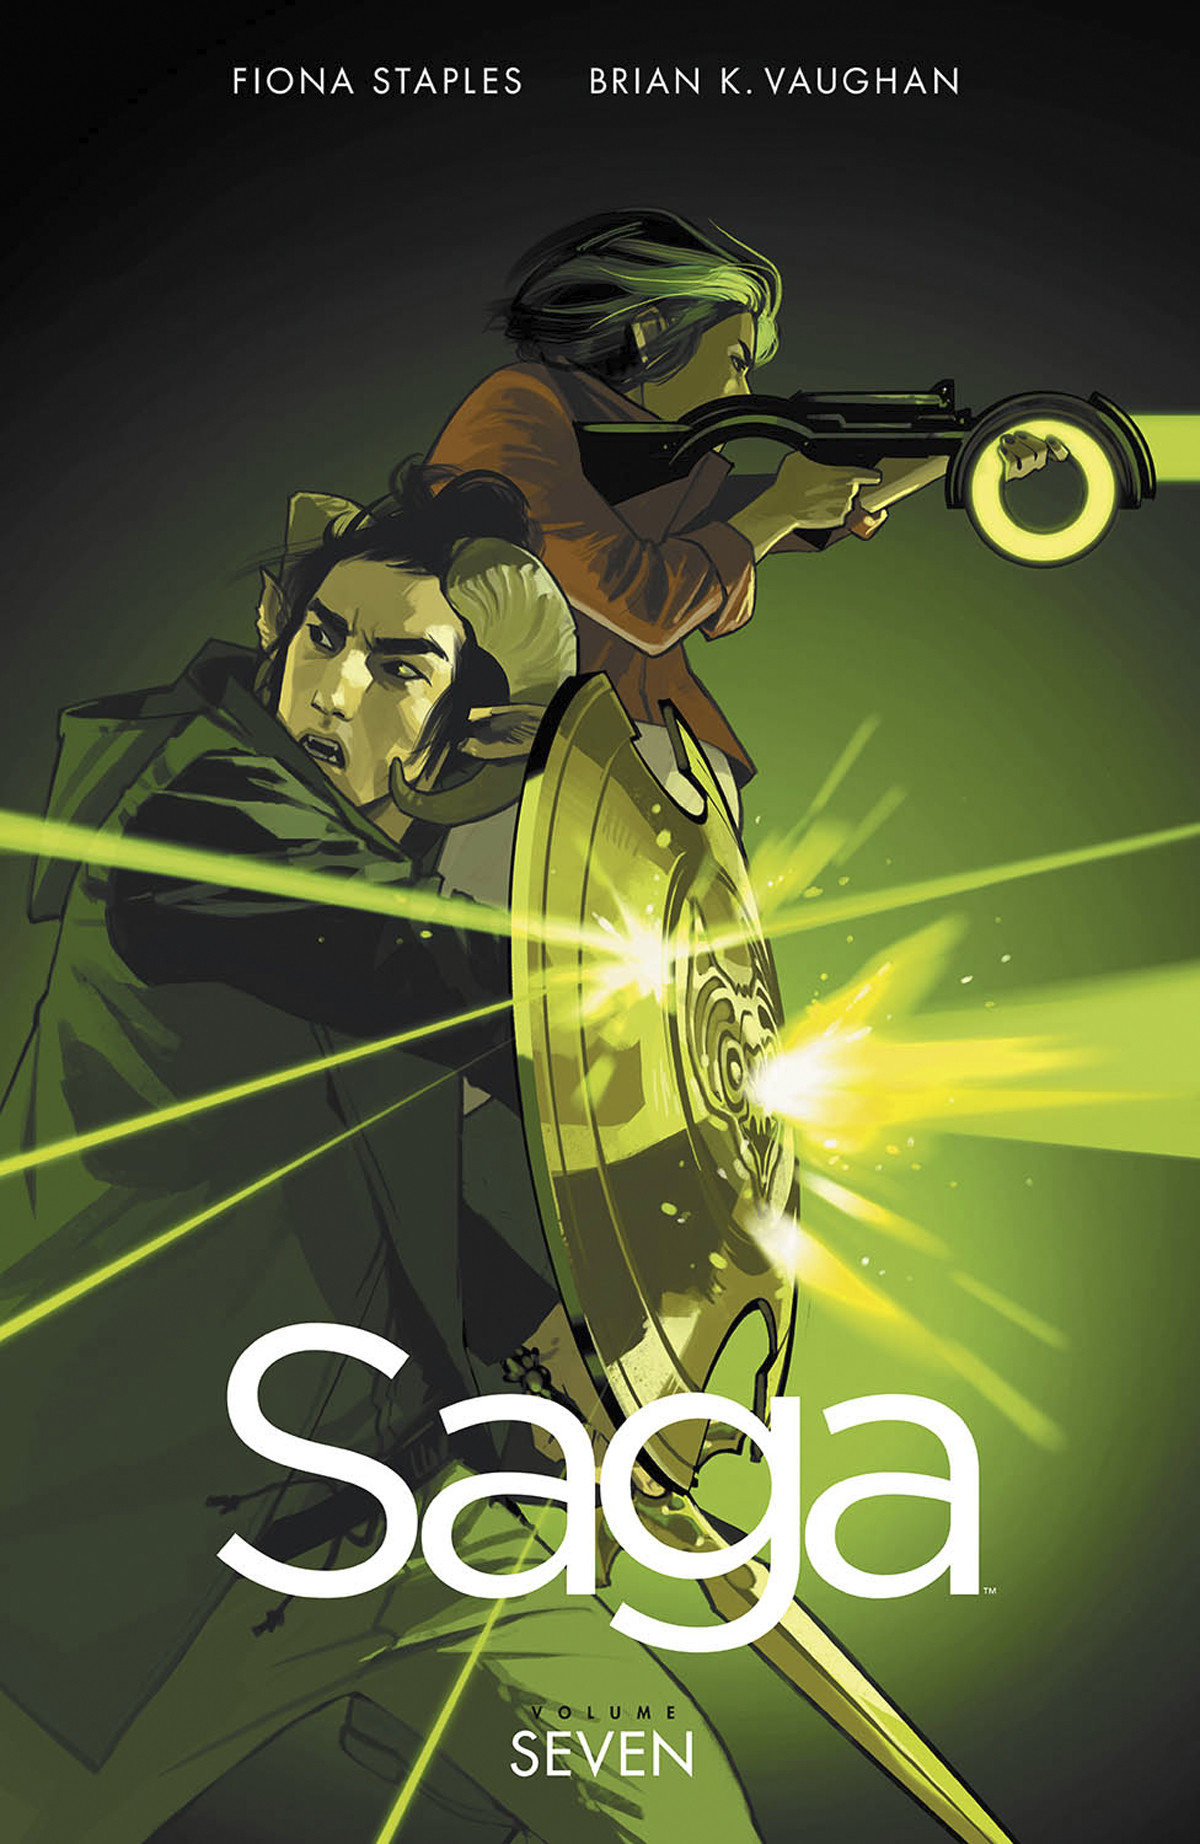 SAGA TP VOL 07 (JAN170850) (MR)